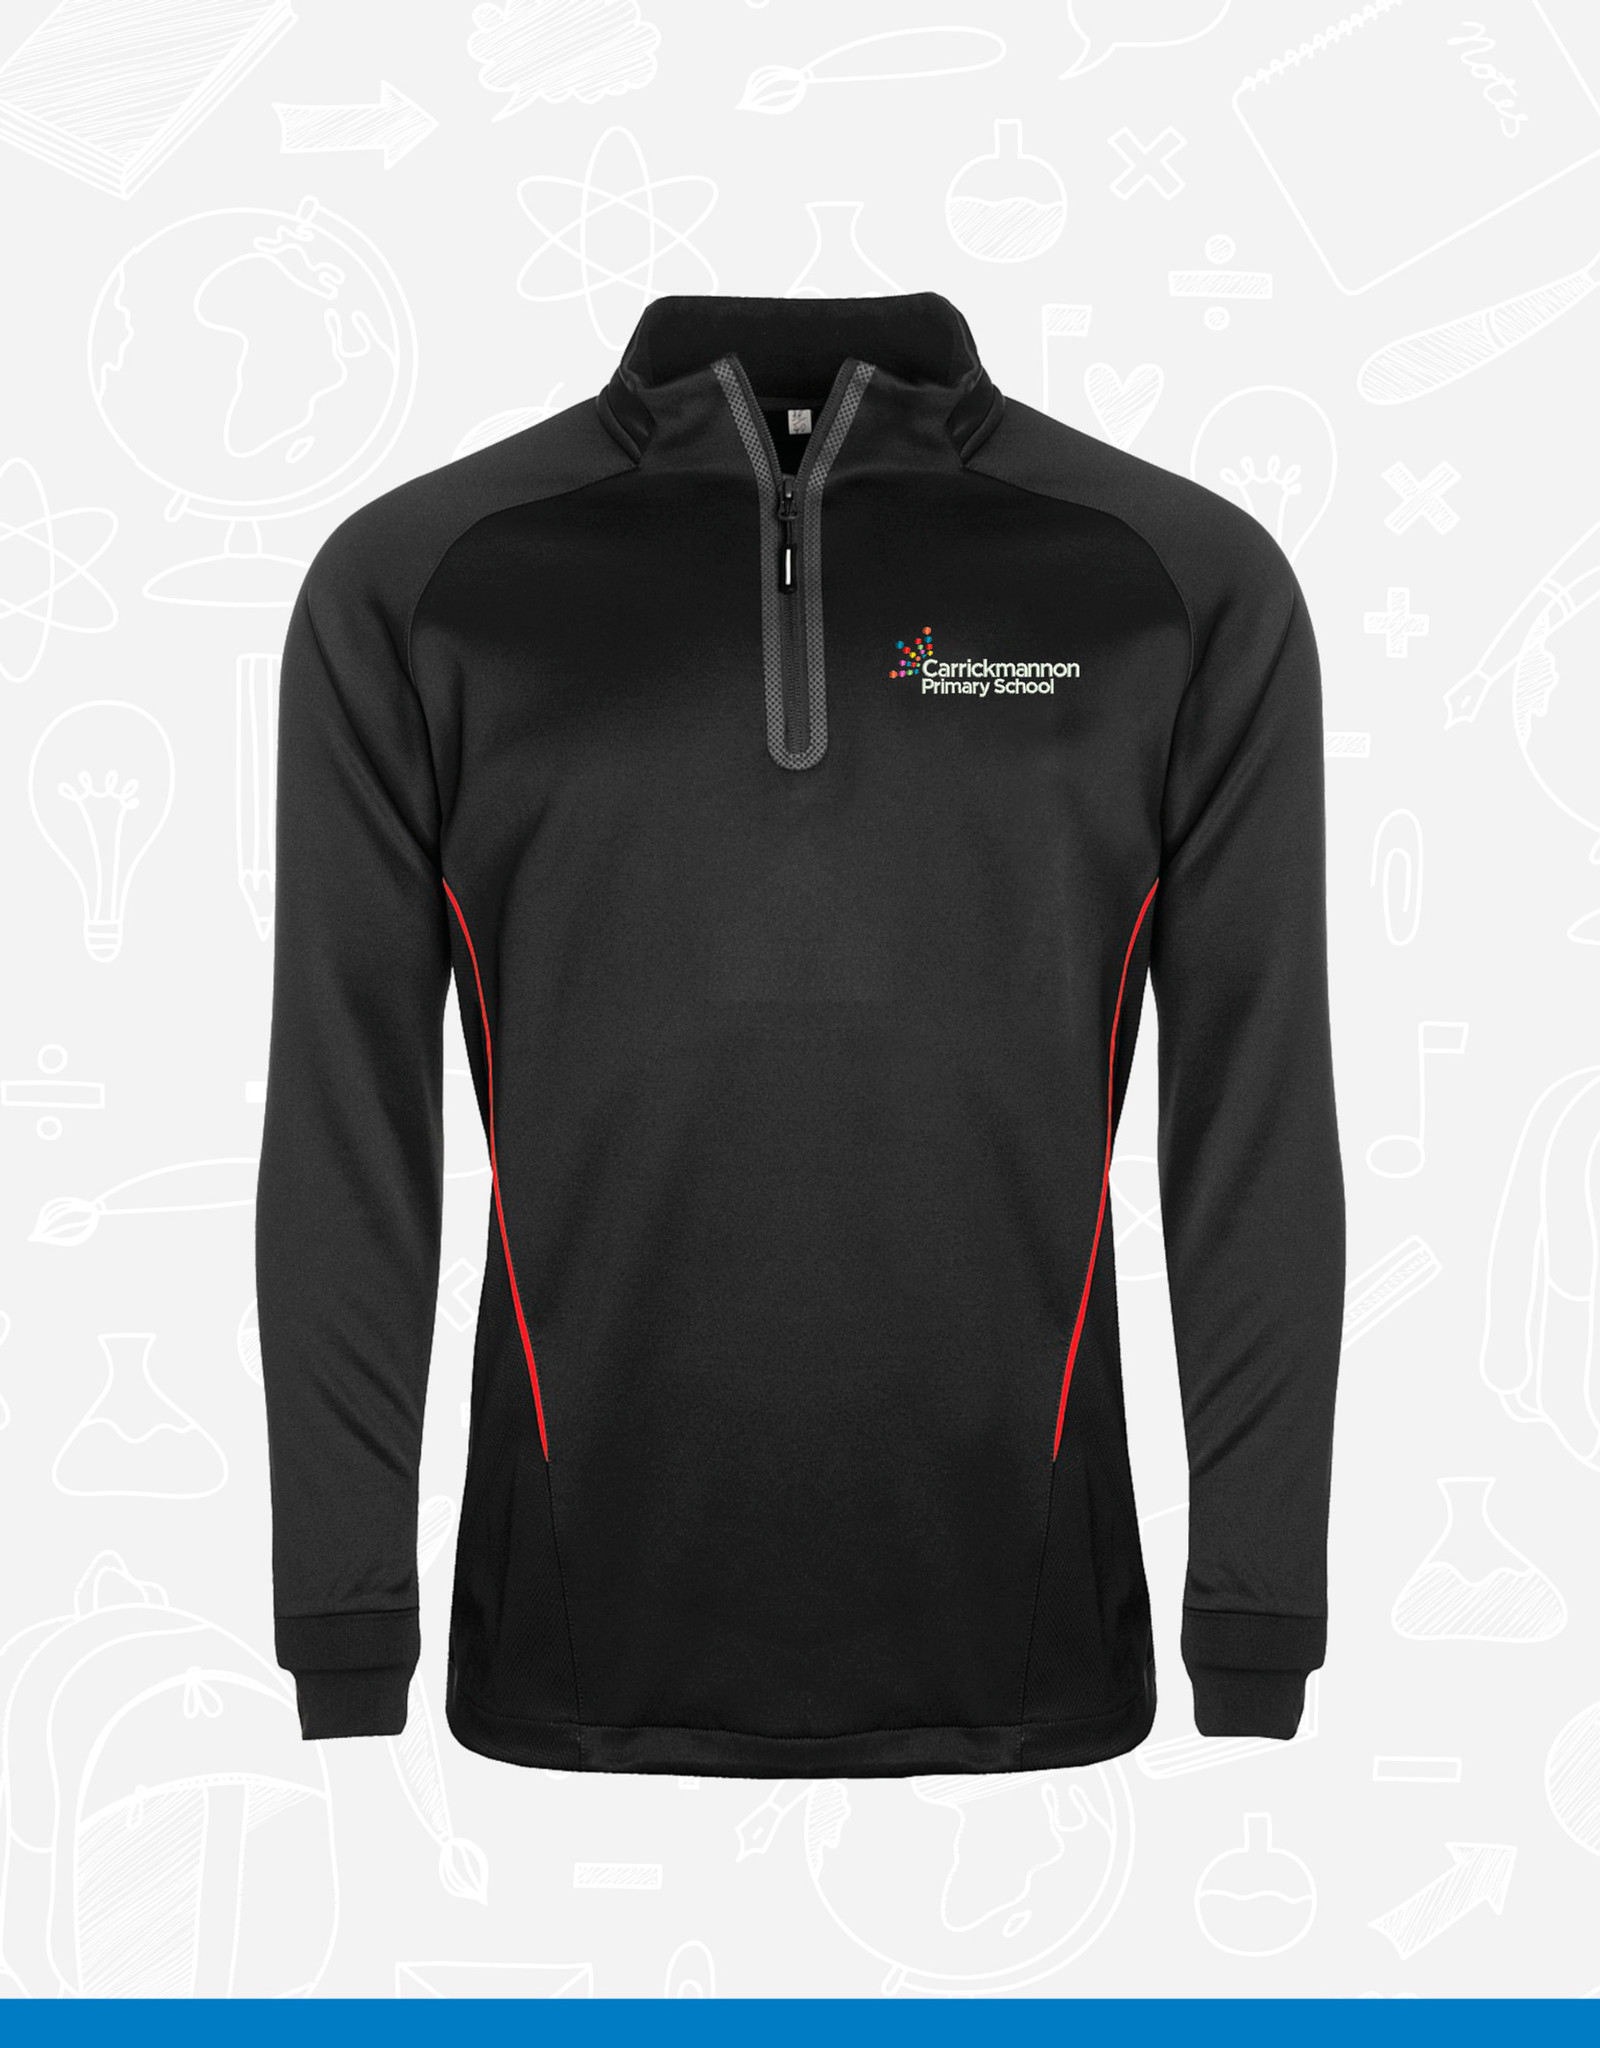 Aptus Carrickmannon Primary Staff 1/4 Zip Top (111891)